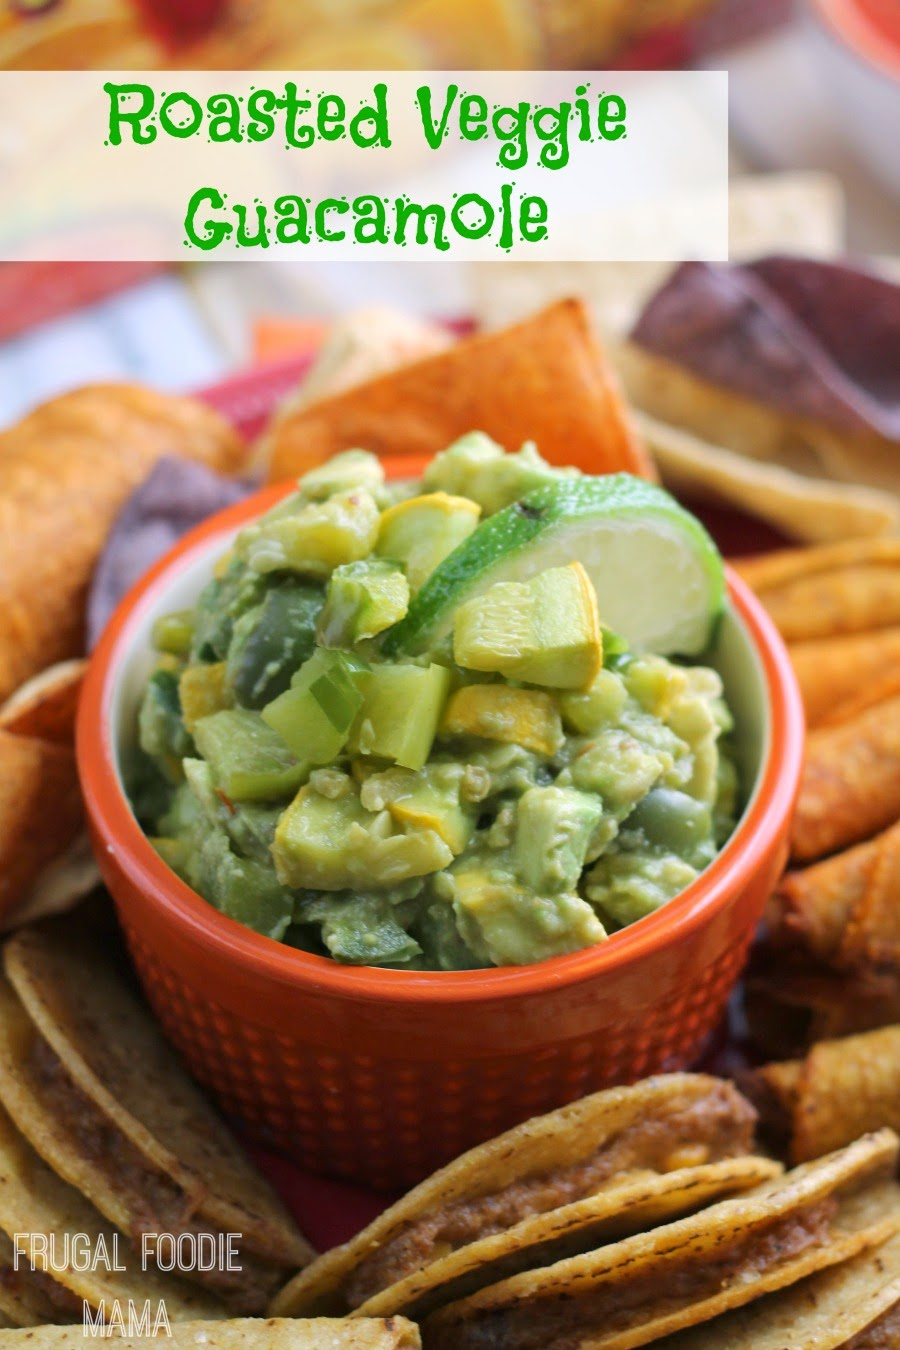 Roasted Veggie Guacamole- this fresh take on classic guacamole is packed with oven roasted veggies #FlavorYourFiesta